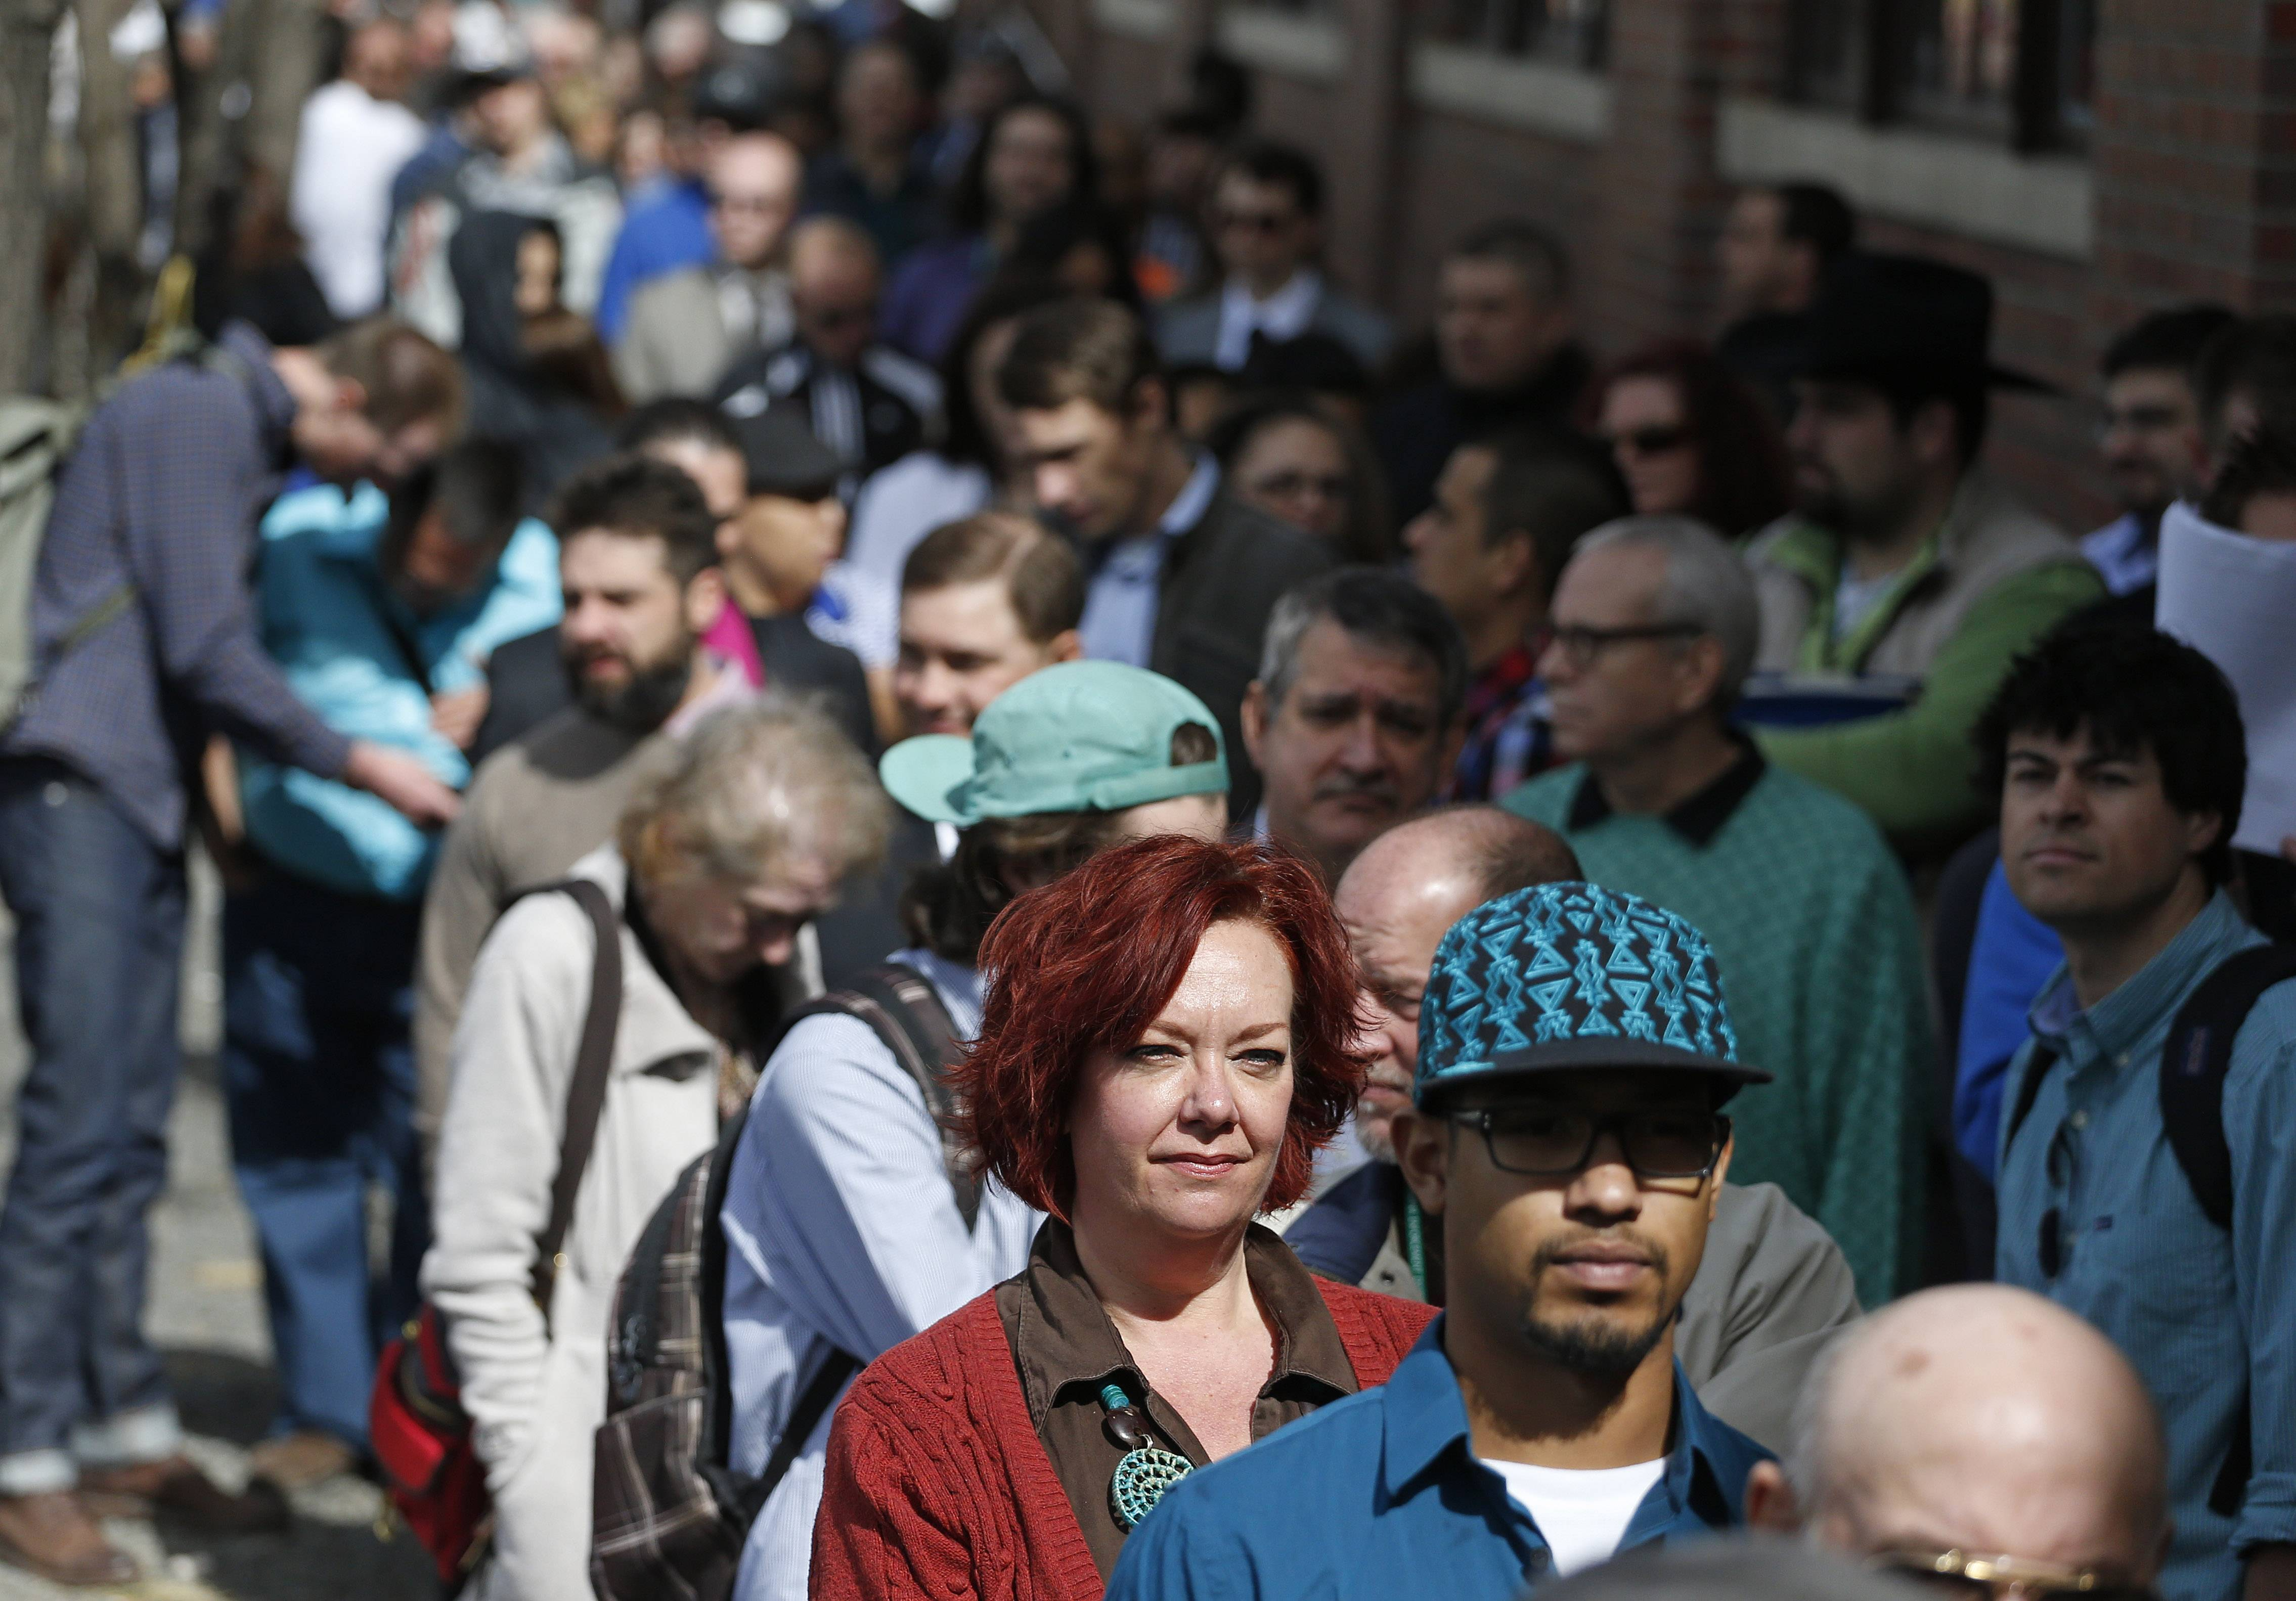 Job seekers line up in the hundreds to attend a marijuana industry job fair hosted by Open Vape, a vaporizer company, in Downtown Denver.